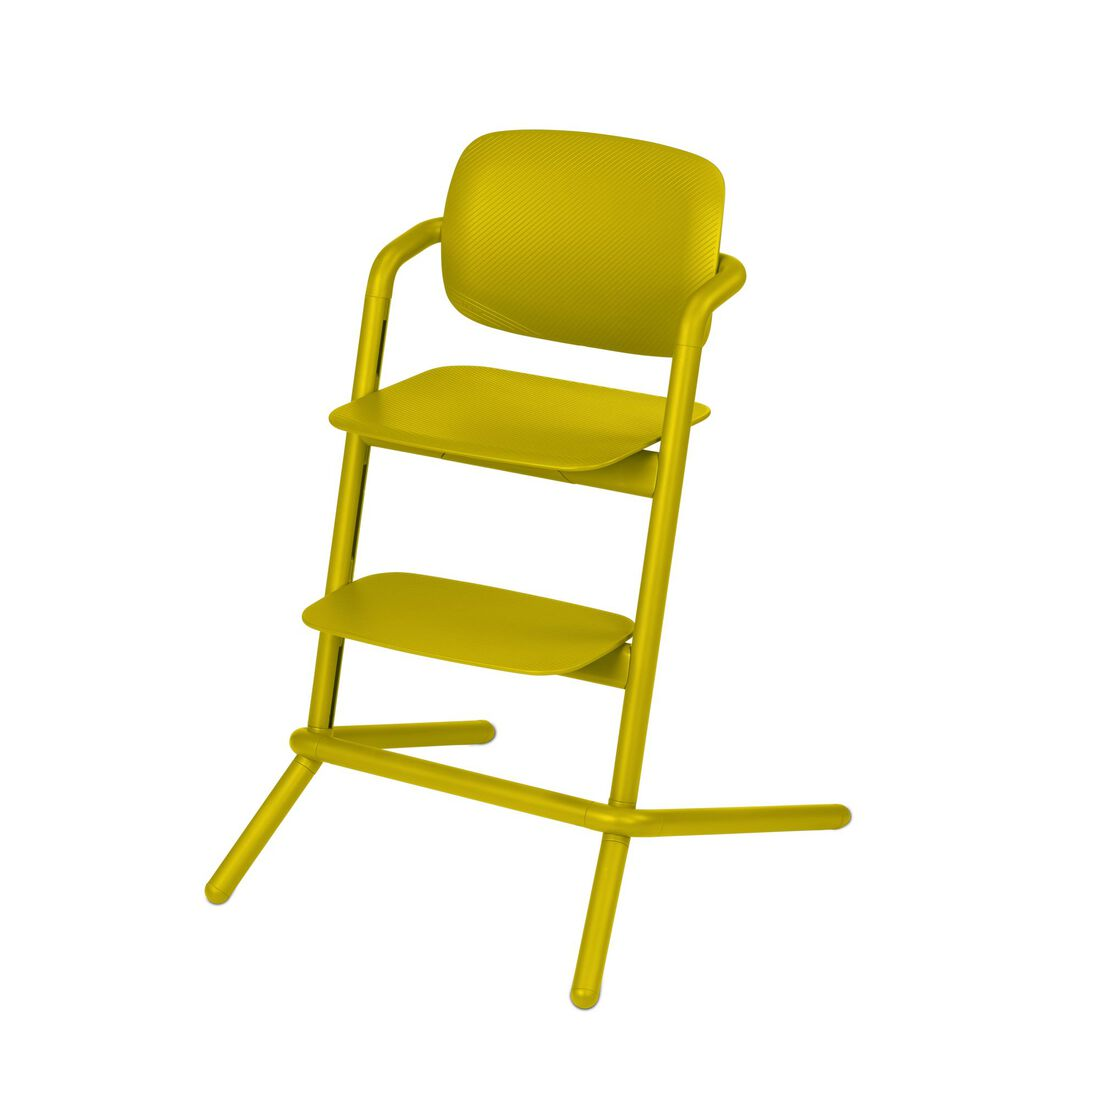 CYBEX Lemo Chair - Canary Yellow (Plastic) in Canary Yellow (Plastic) large image number 1